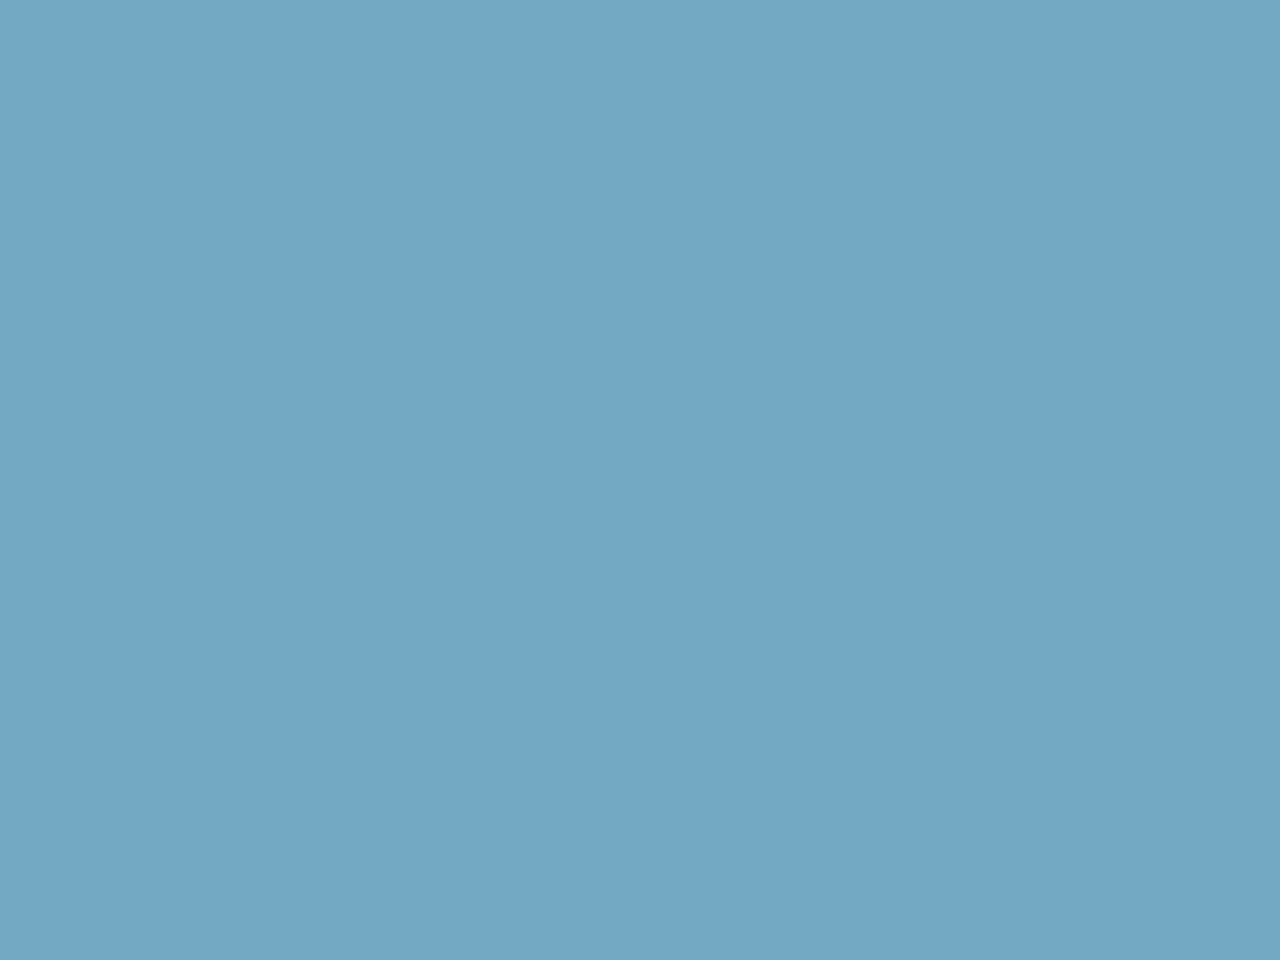 1280x960 Moonstone Blue Solid Color Background